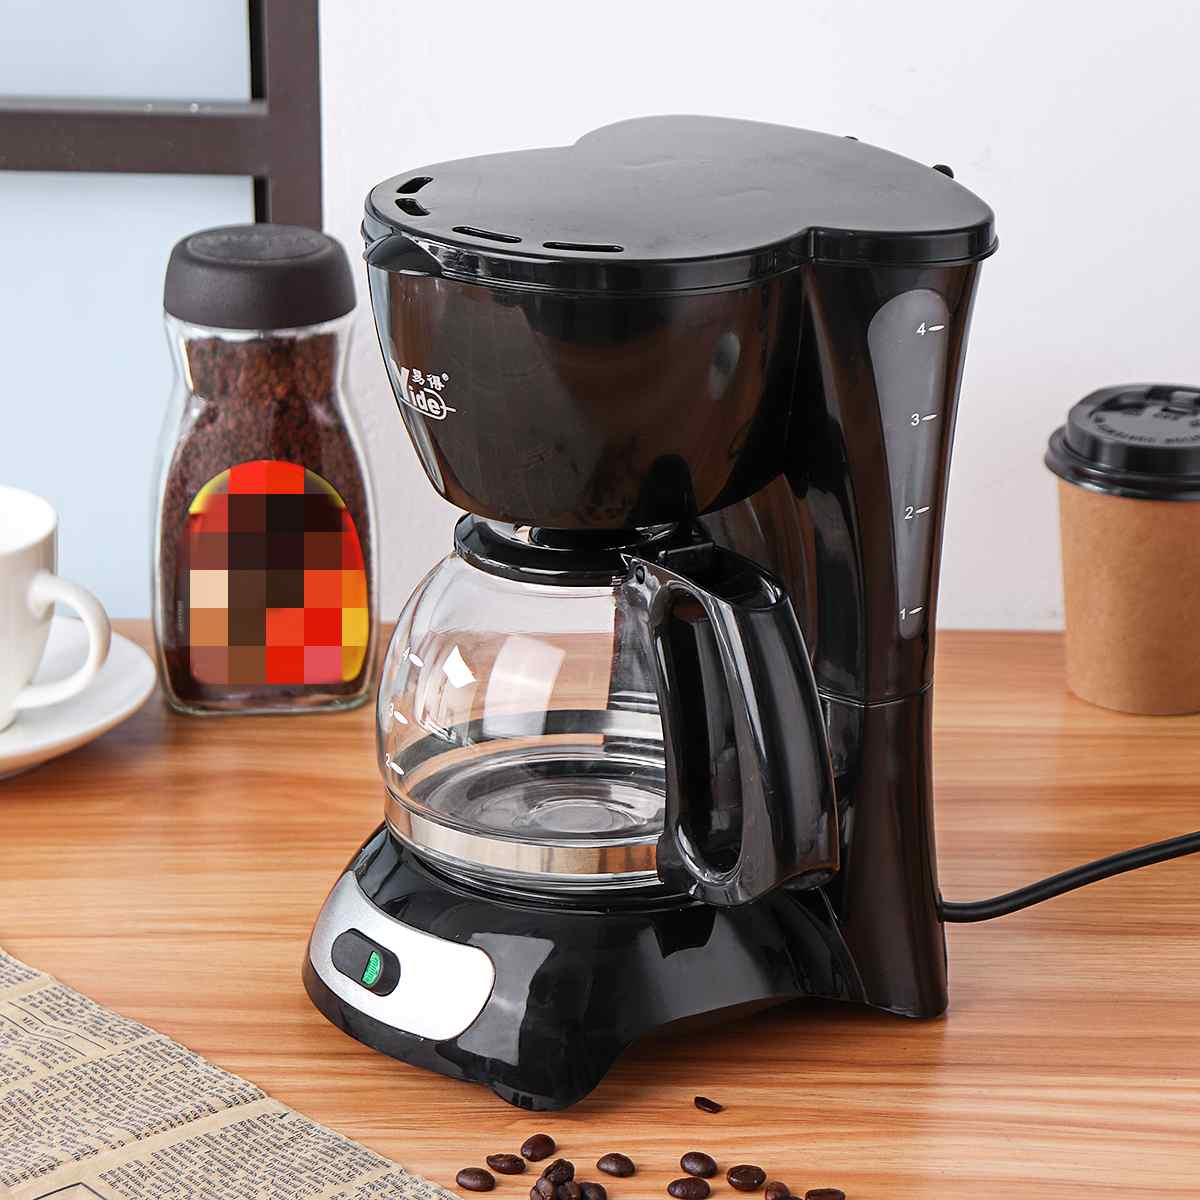 650W 220V Electric Coffee Maker Automatic Insulation Pot Small Drip Commercial American Coffee Machine Kitchen 4-6 People 4-Cups